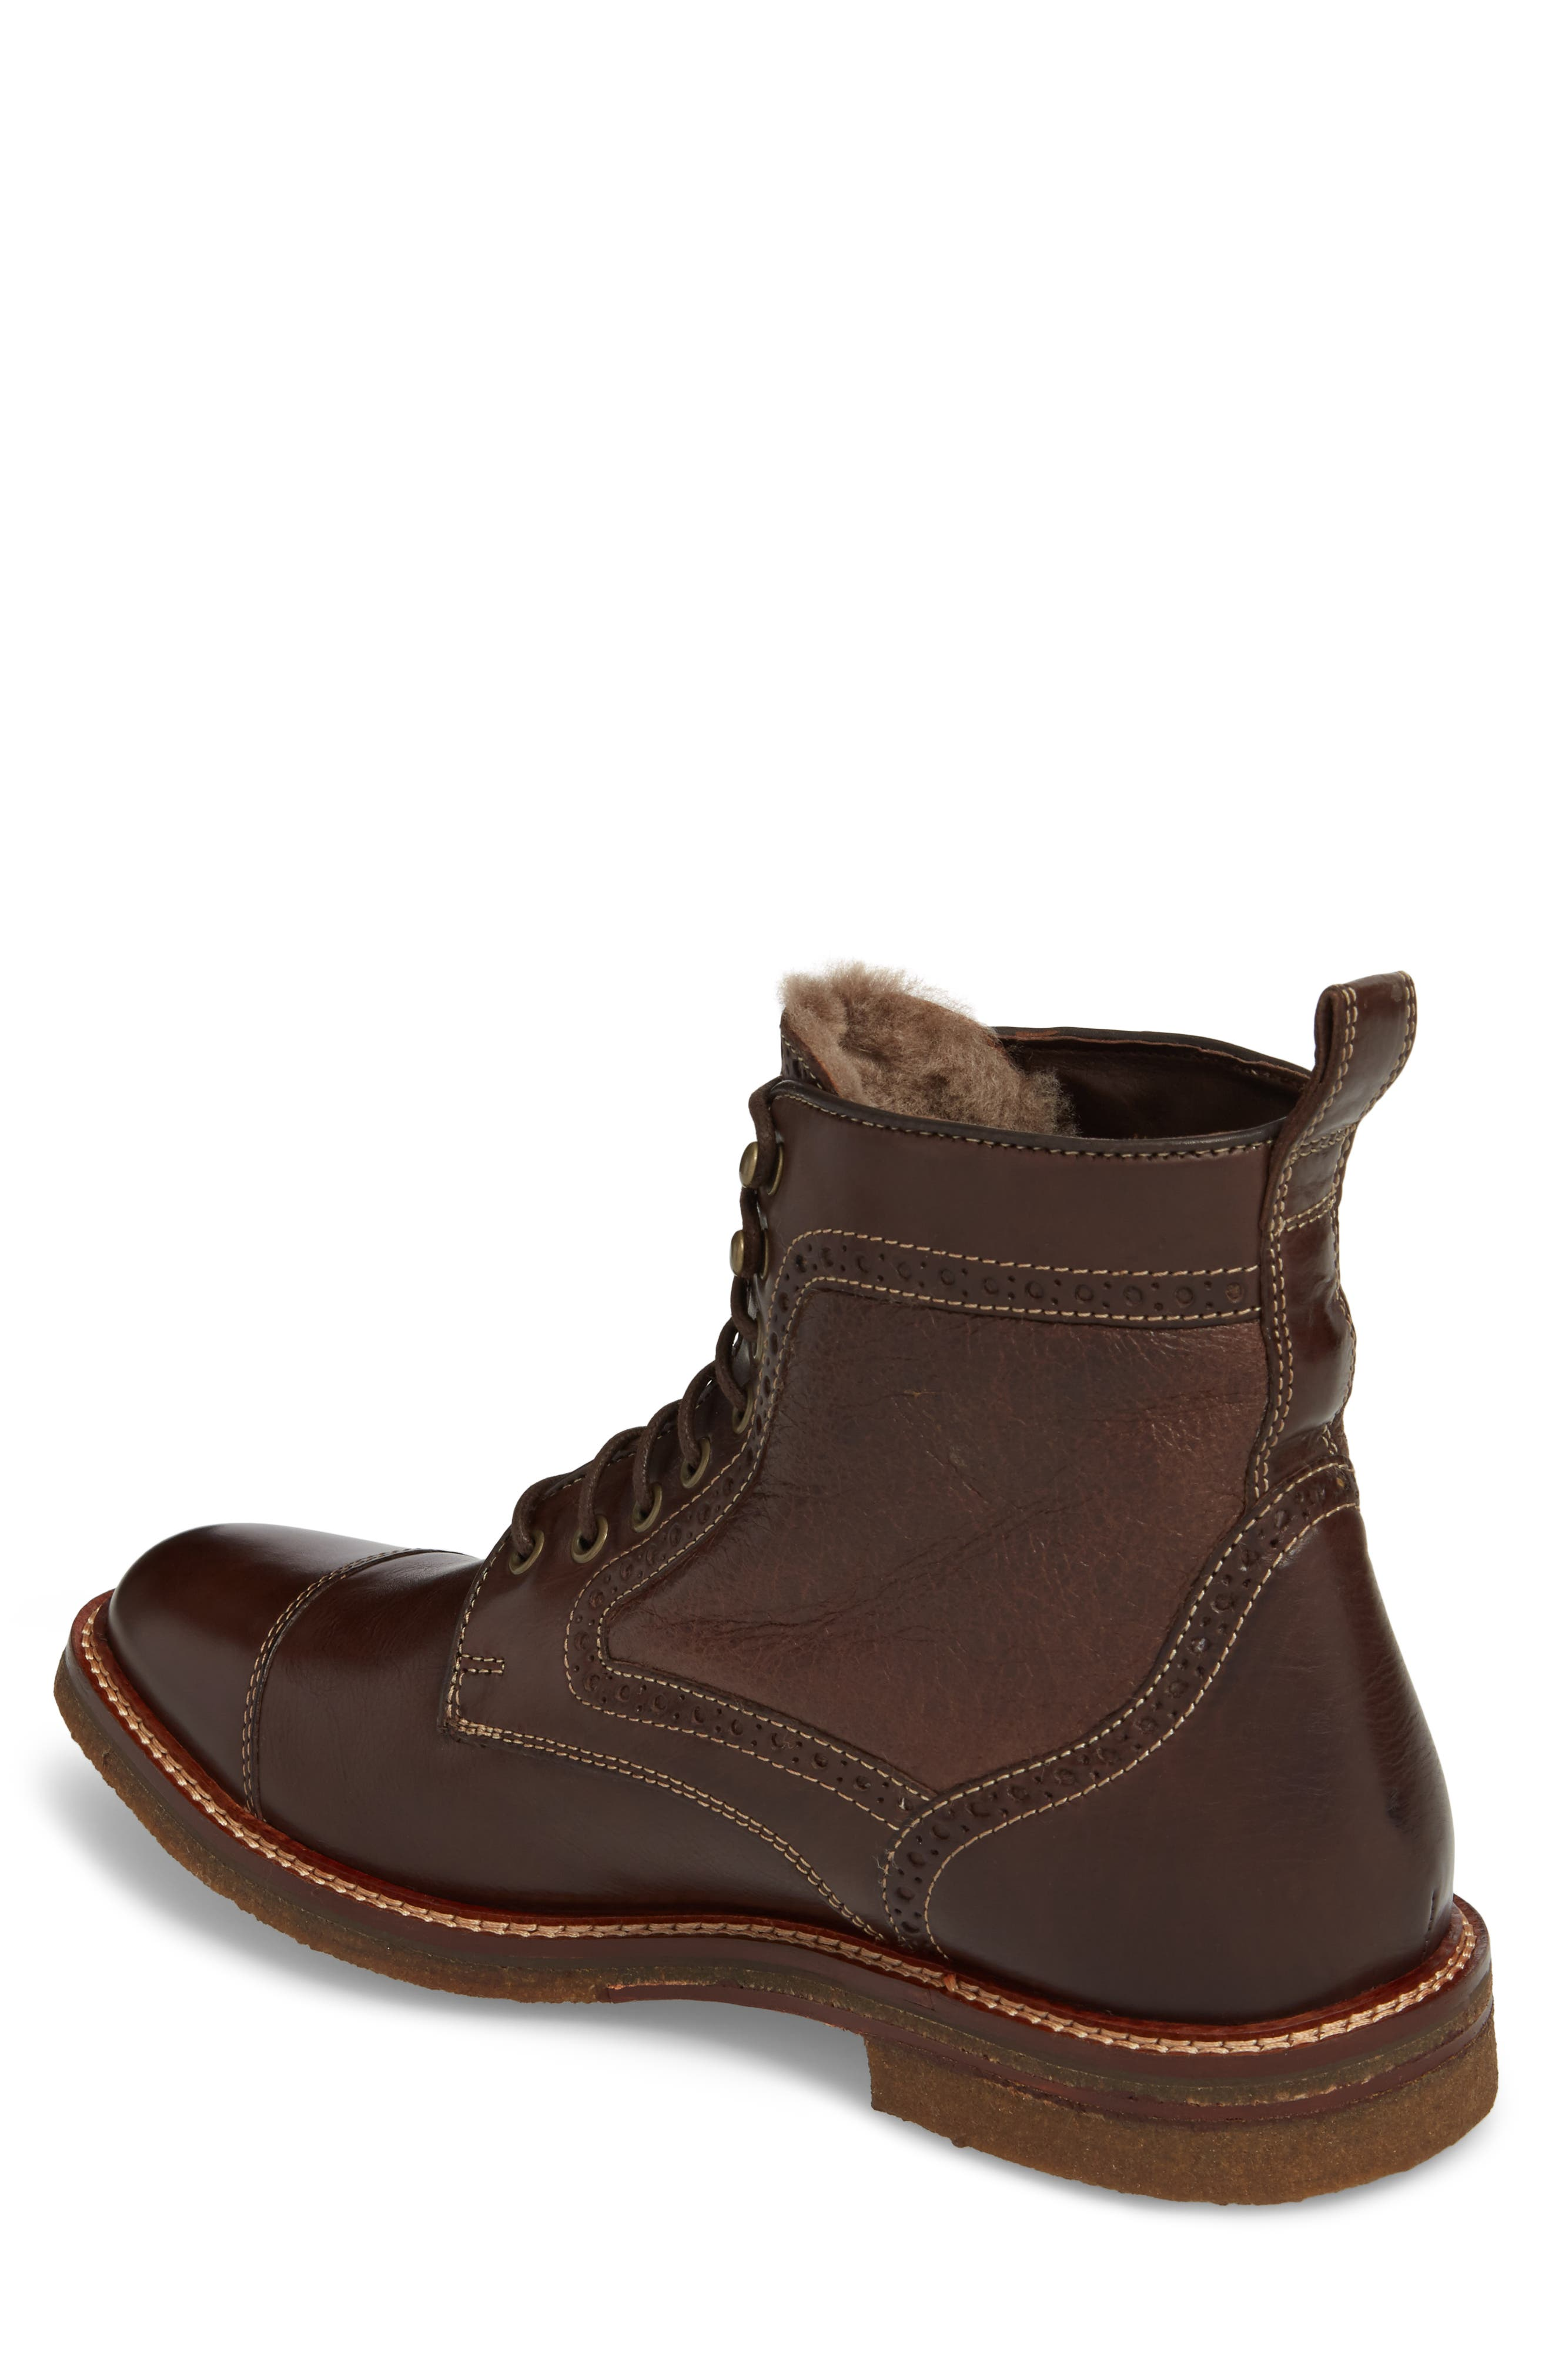 Forrester Genuine Shearling Lined Cap Toe Boot,                             Alternate thumbnail 2, color,